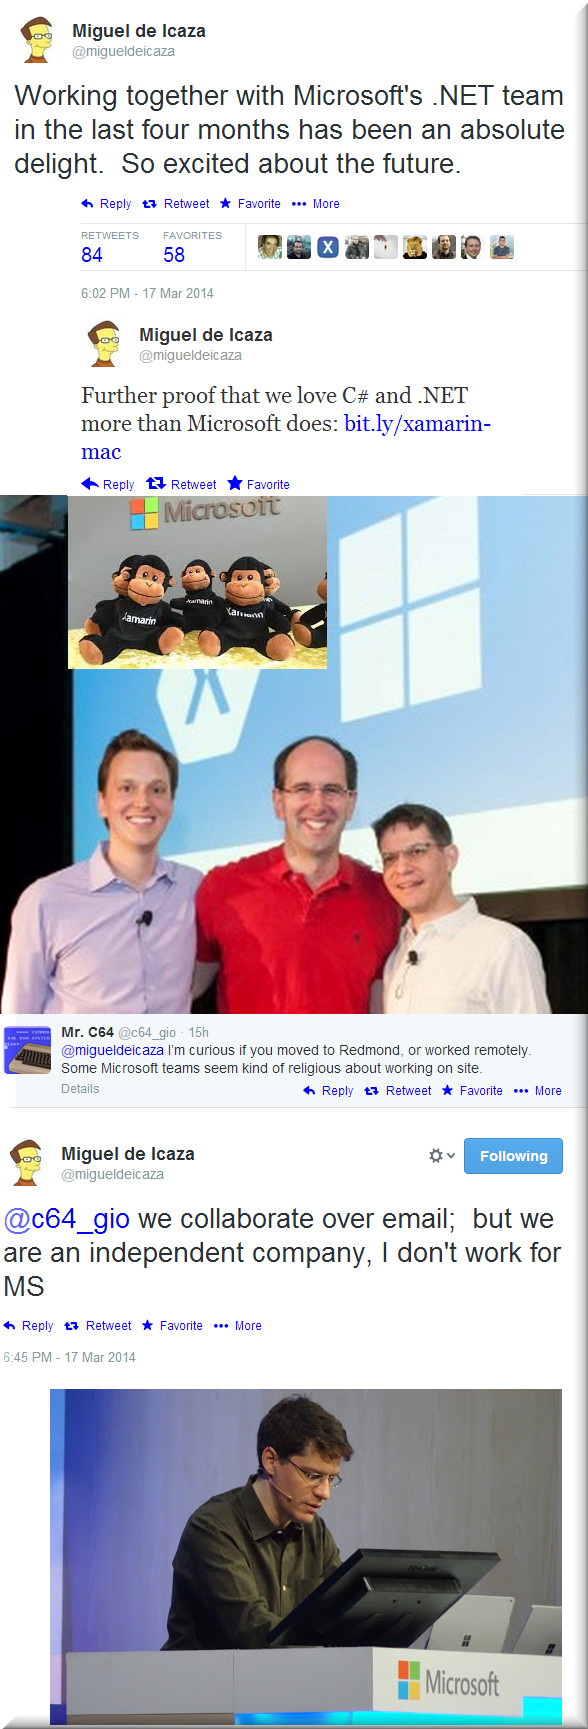 Microsoft and de Icaza